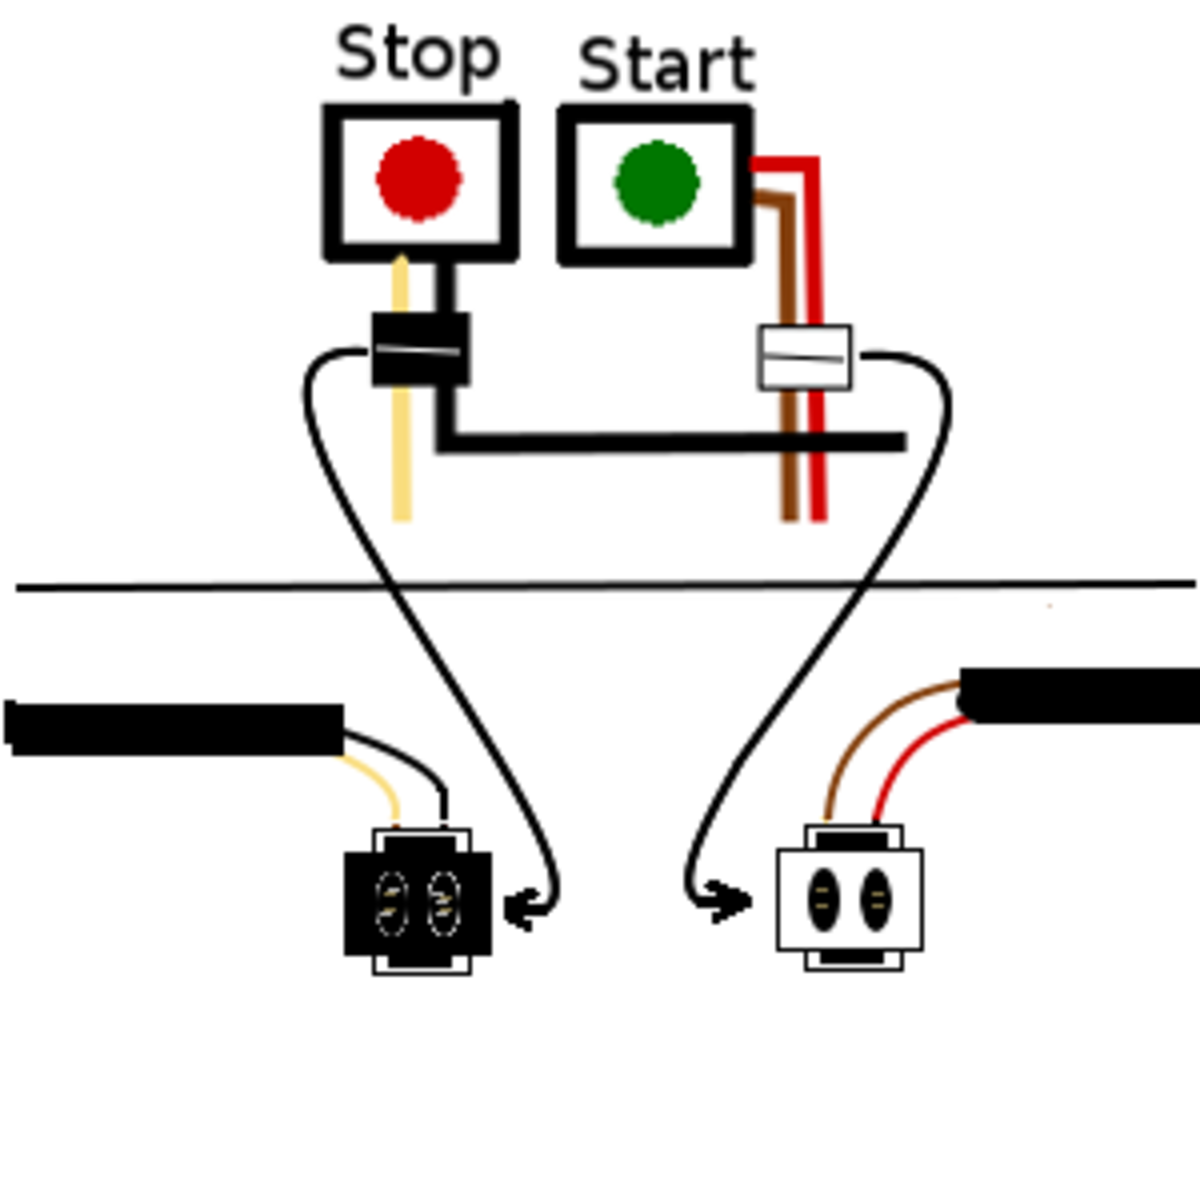 4. The start and stop switch and wires, located on the left side handlebar.